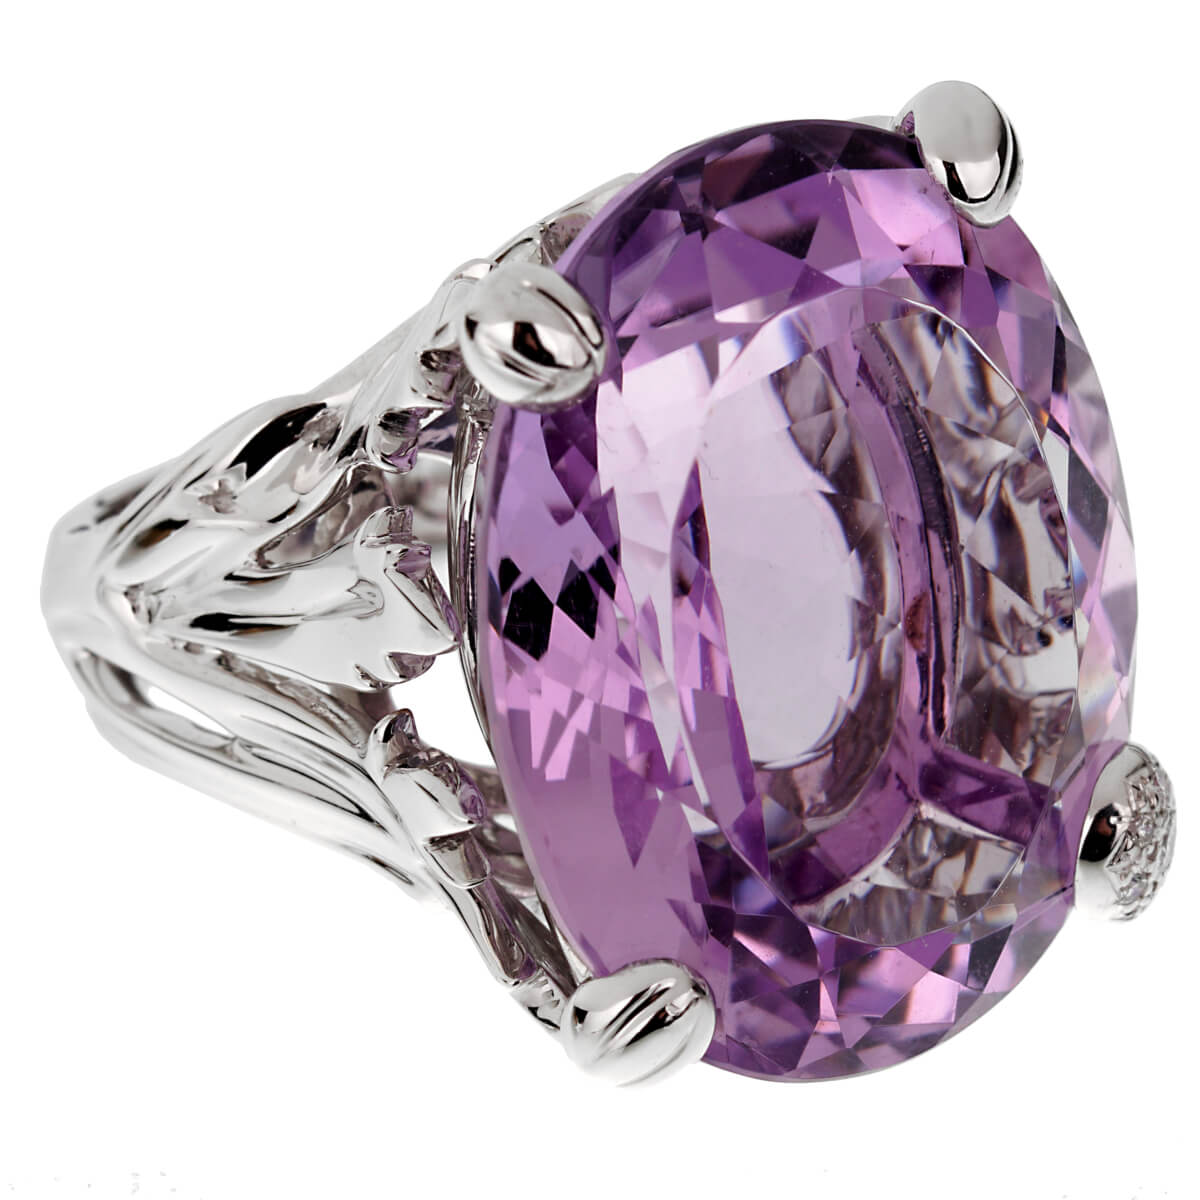 Christian Dior 44.5ct Amethyst Diamond Cocktail White Gold Ring